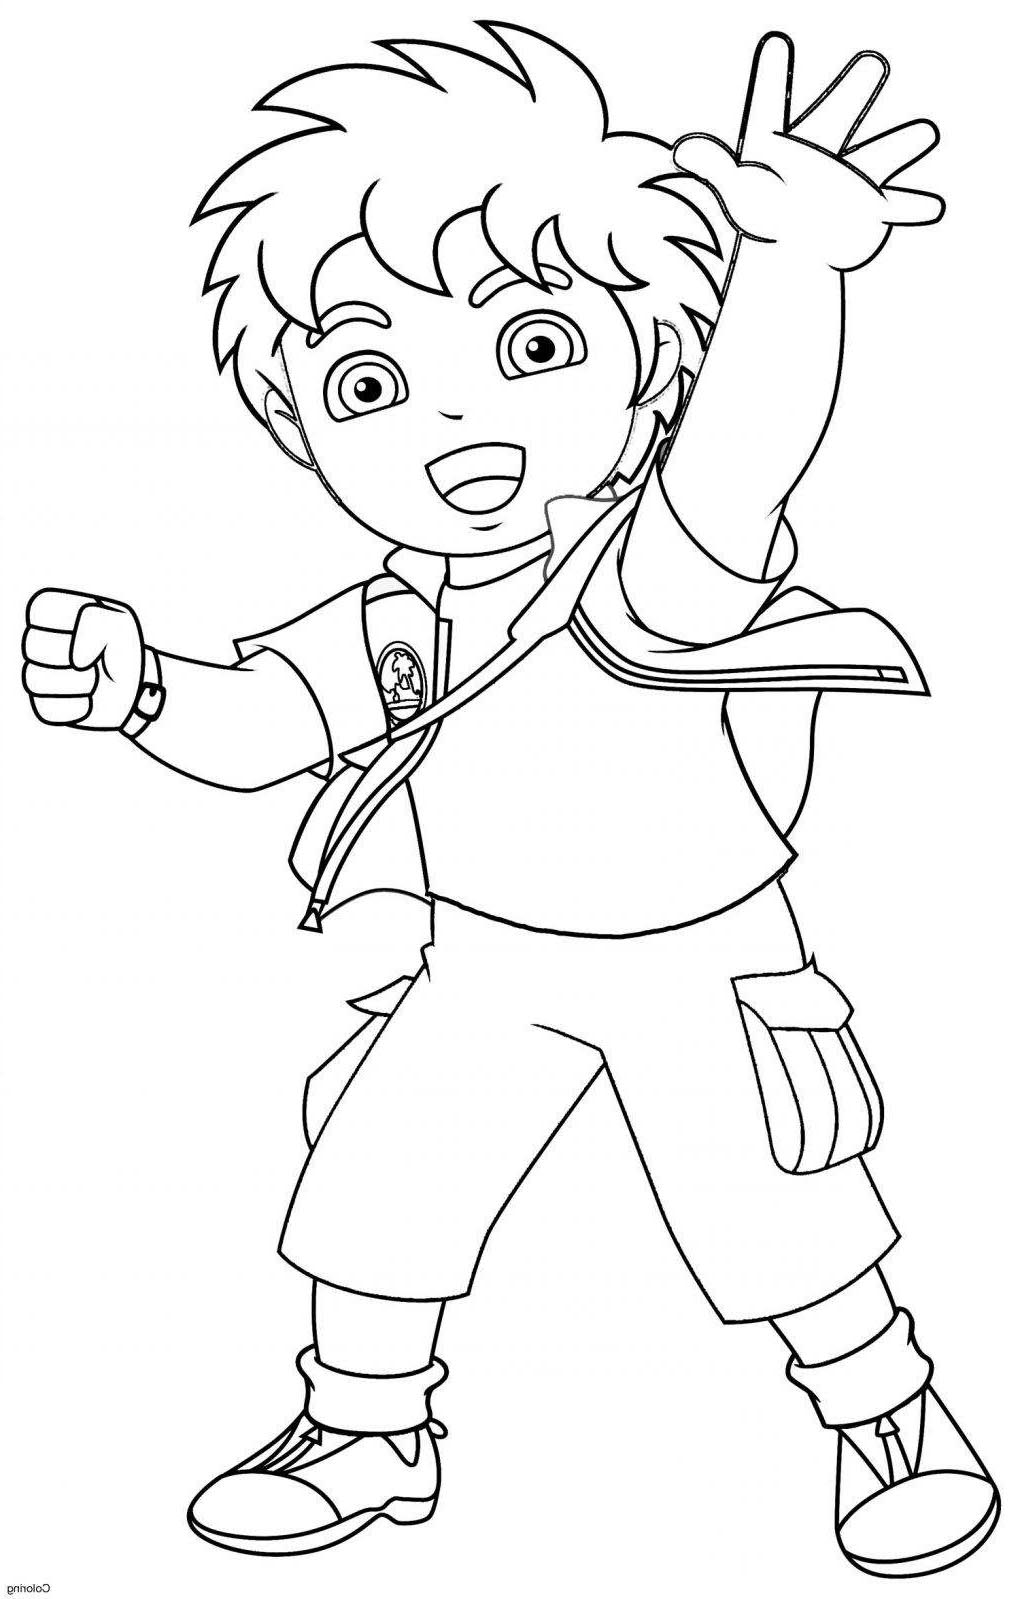 Nickelodeon Coloring Pages Book Nick Linear Free Printable